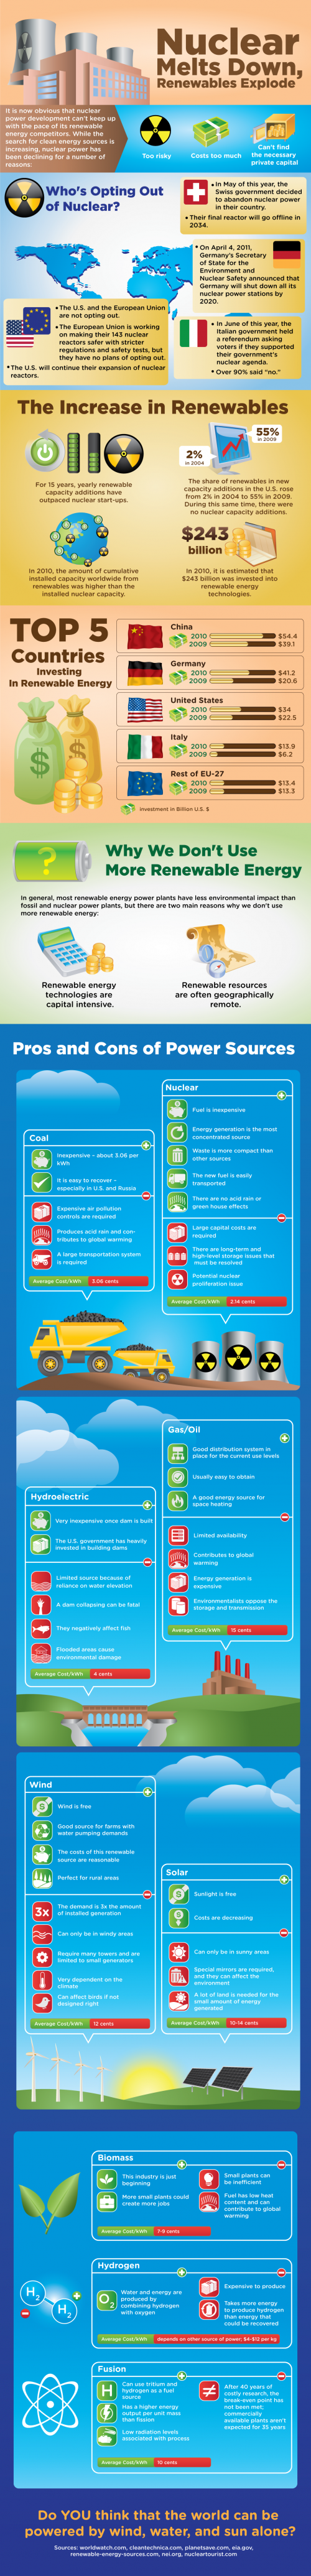 nuclear-infographic-e1312574426903